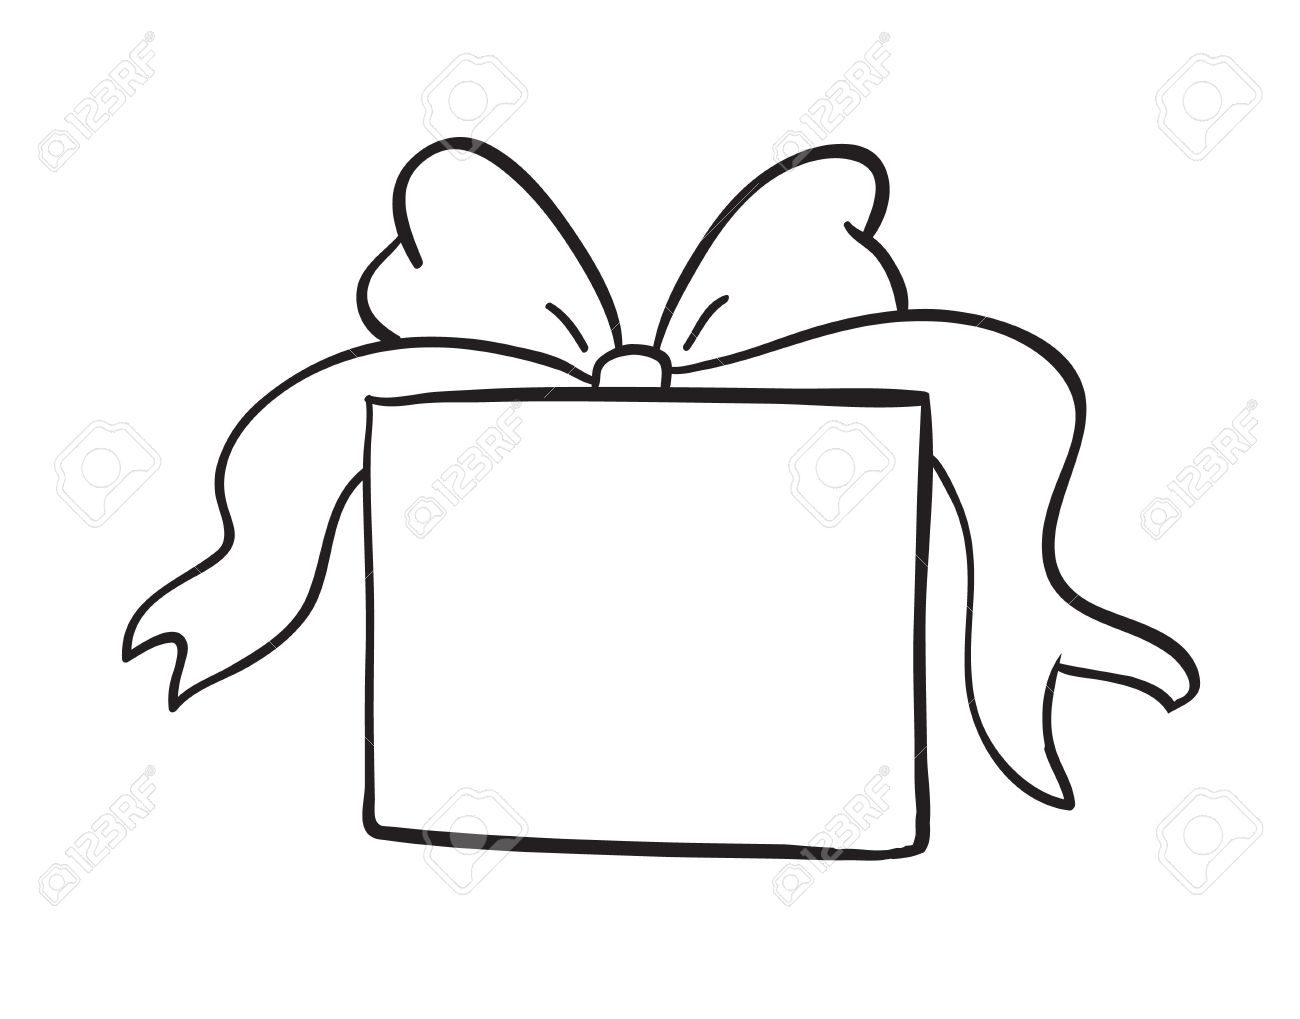 detailed sketch of gift box on a white background.